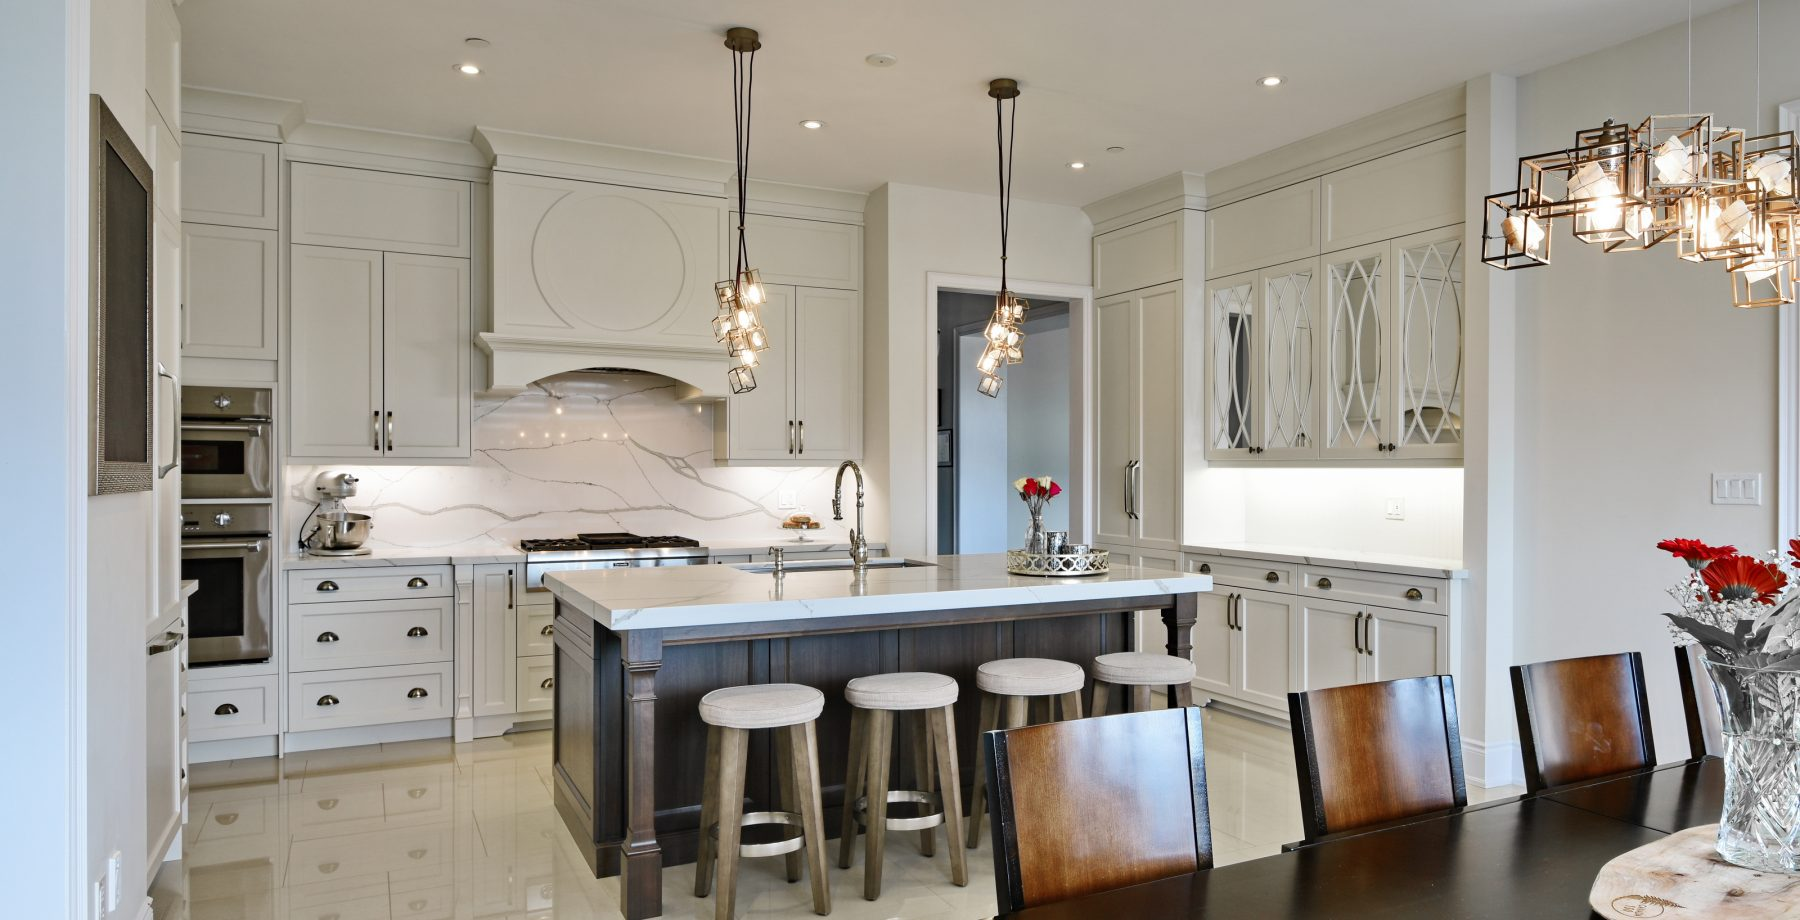 Home   Selba Kitchens & Baths is a Canadian based company ...